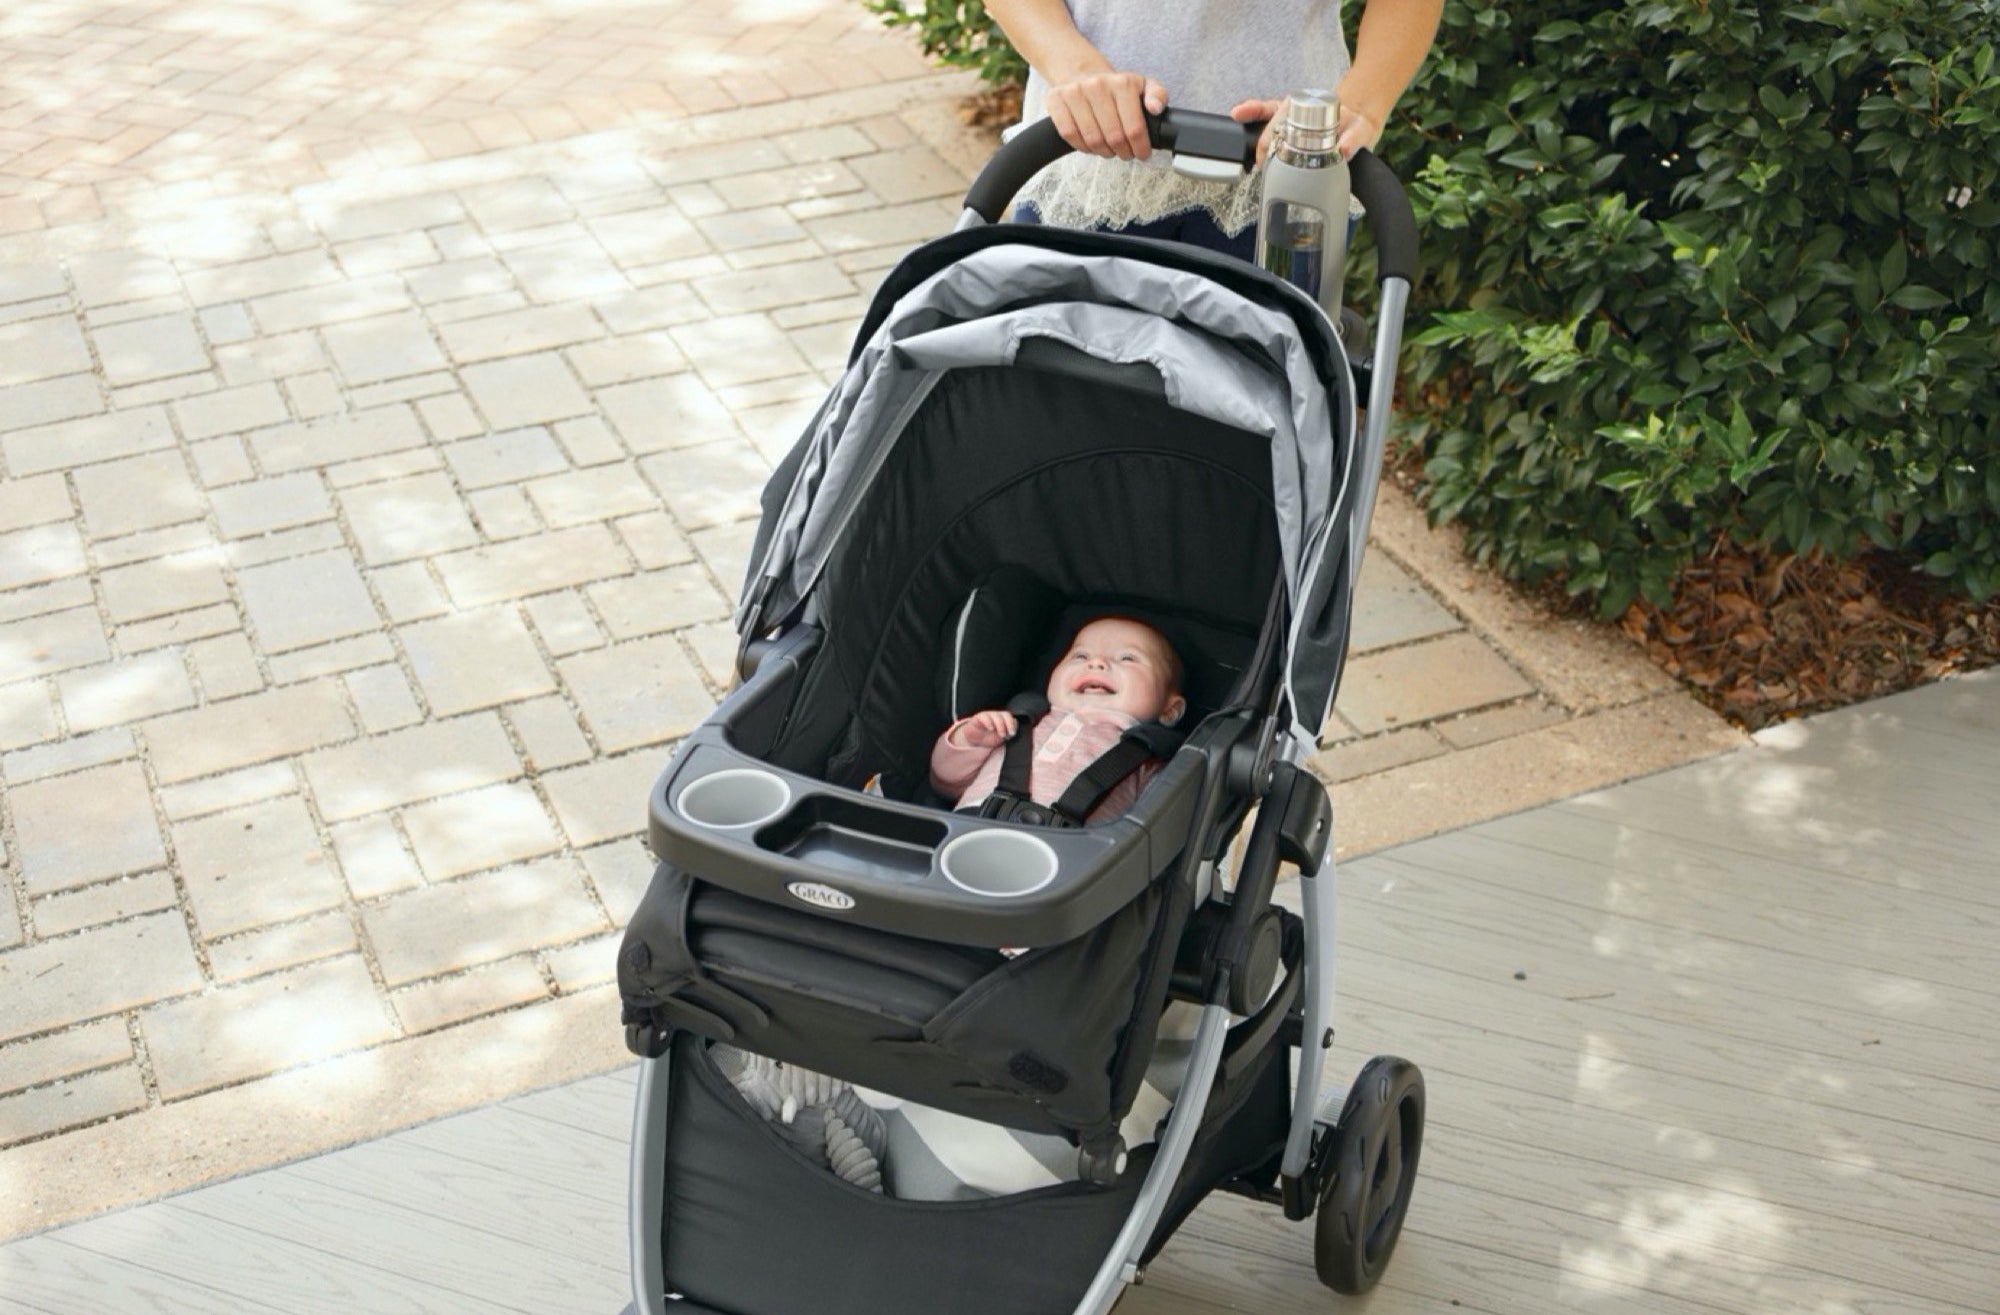 baby in a stroller as a parent pushes the stroller